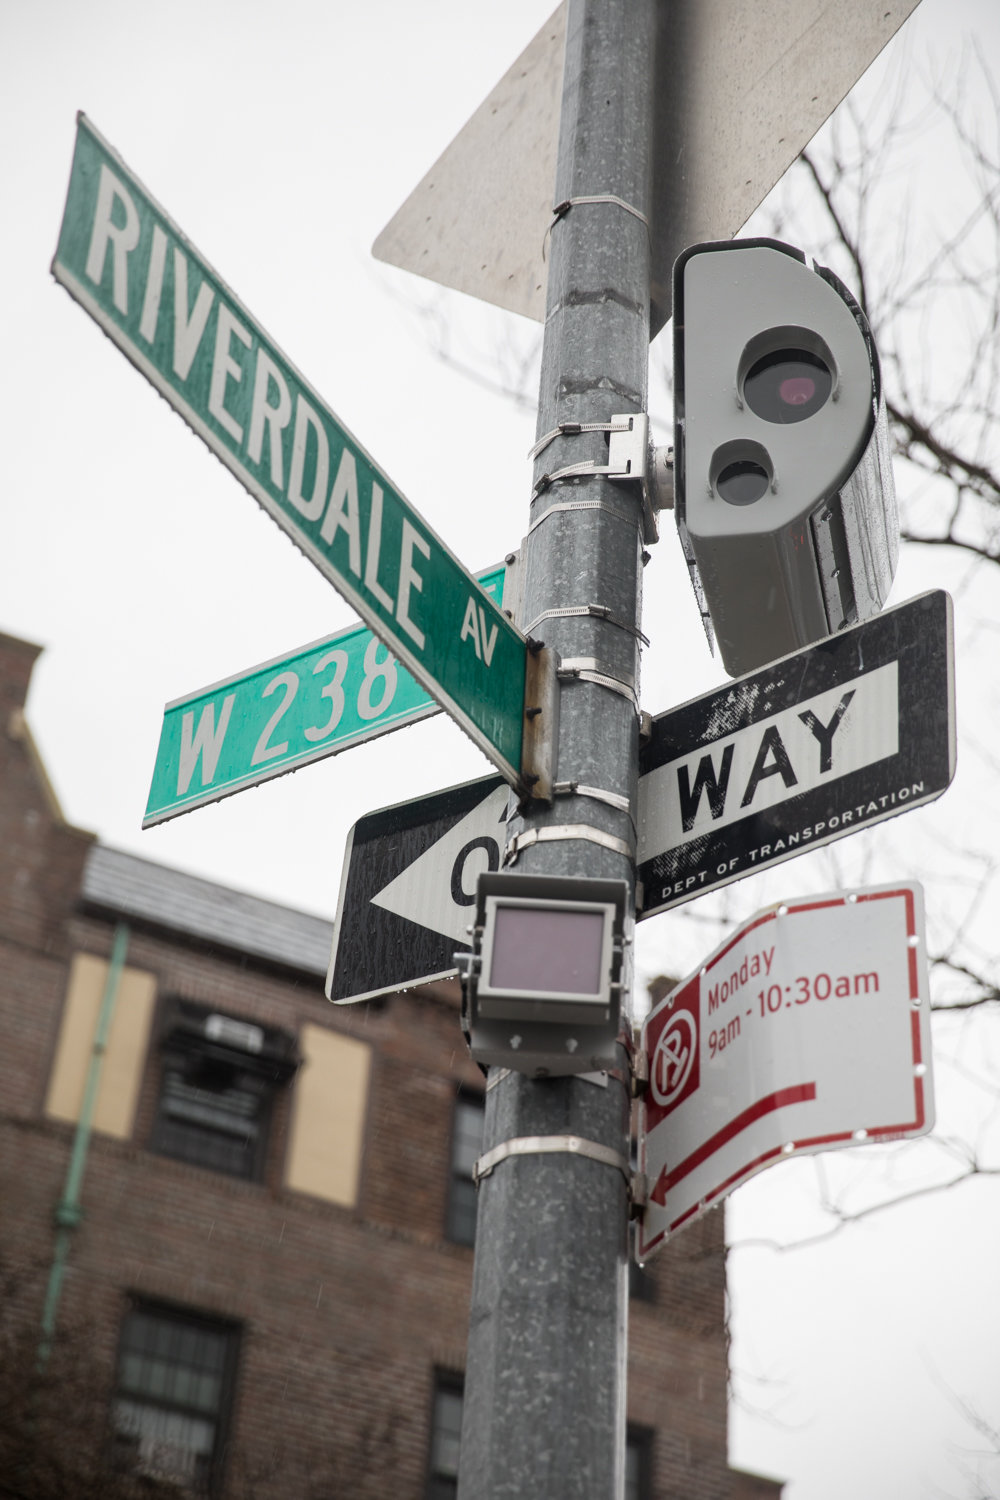 West 238th Street is staggered across Riverdale Avenue, but there's one section where drivers will have to be more careful than usual, because city officials have installed a new speed camera.